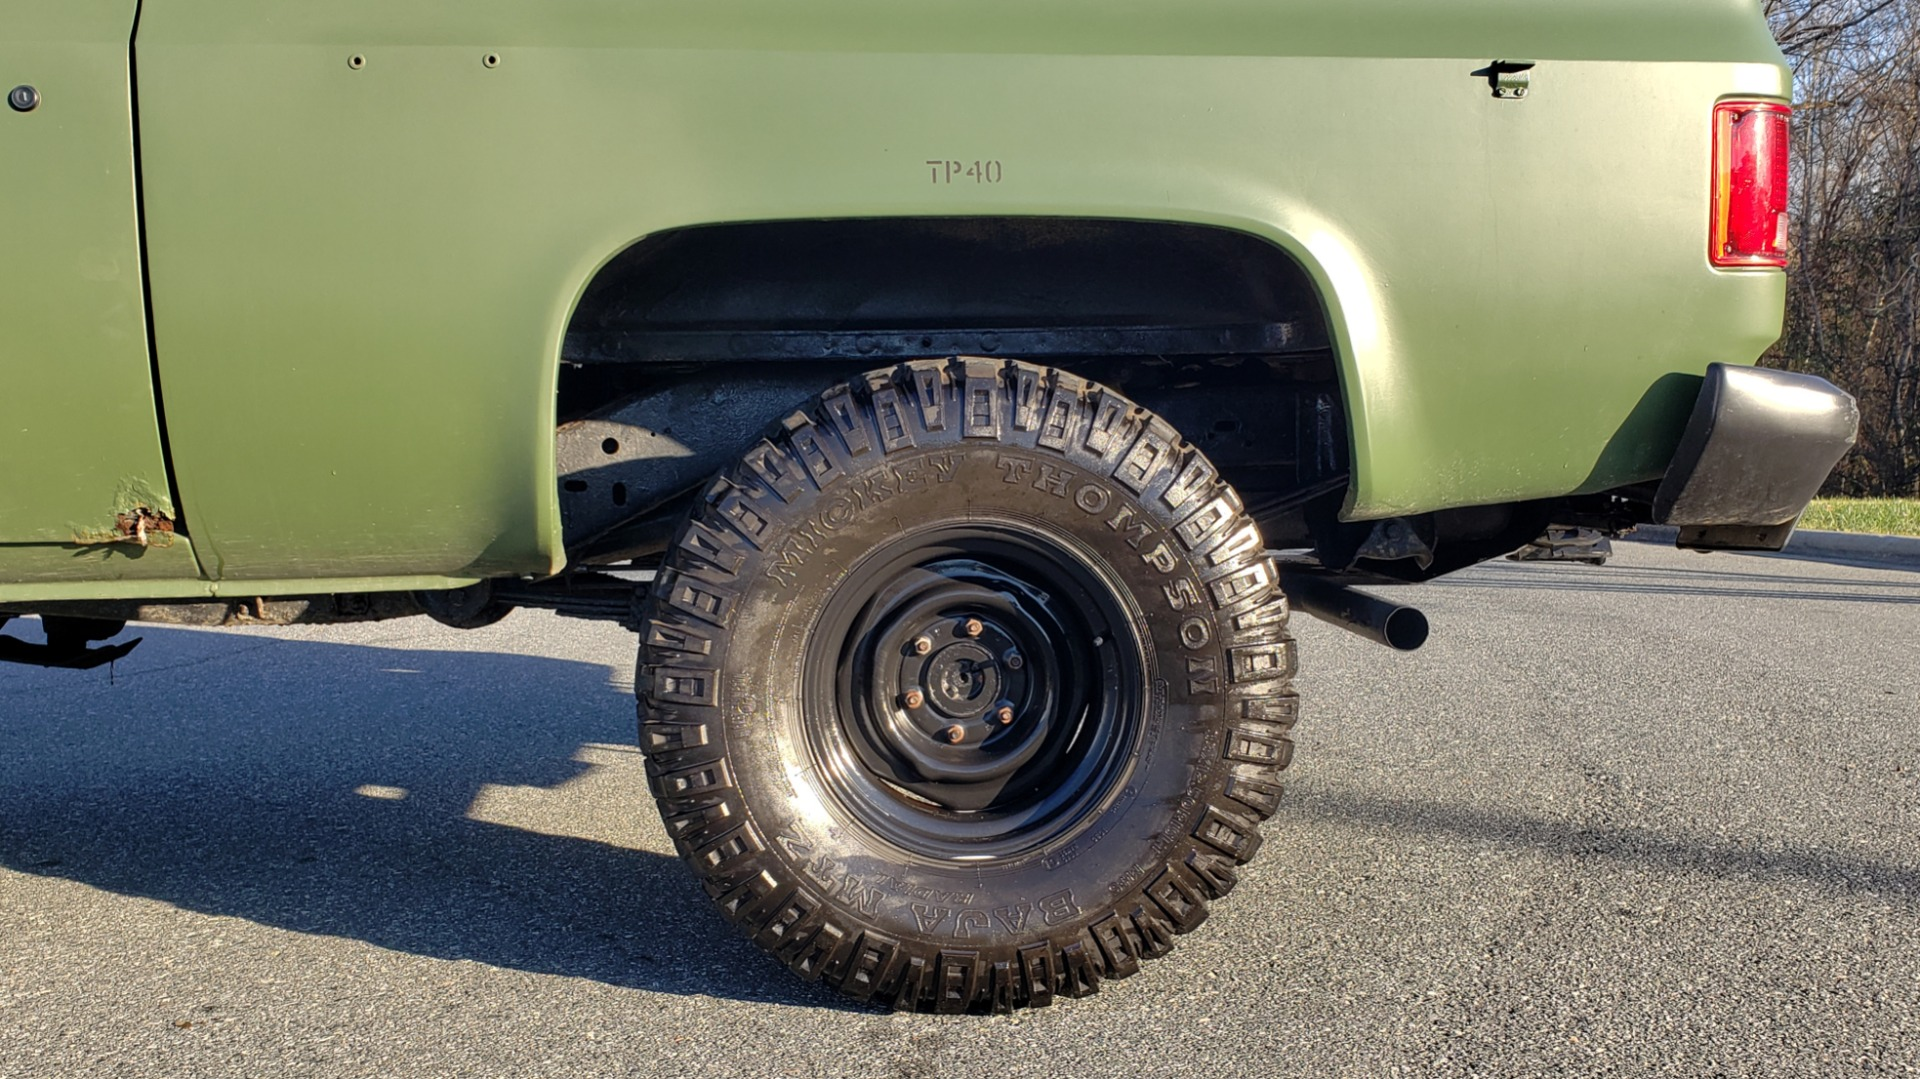 Used 1985 Chevrolet BLAZER D10 MILITARY SUV / 4X4 / 6.2L DIESEL V8 / VINTAGE AIR for sale $15,000 at Formula Imports in Charlotte NC 28227 72